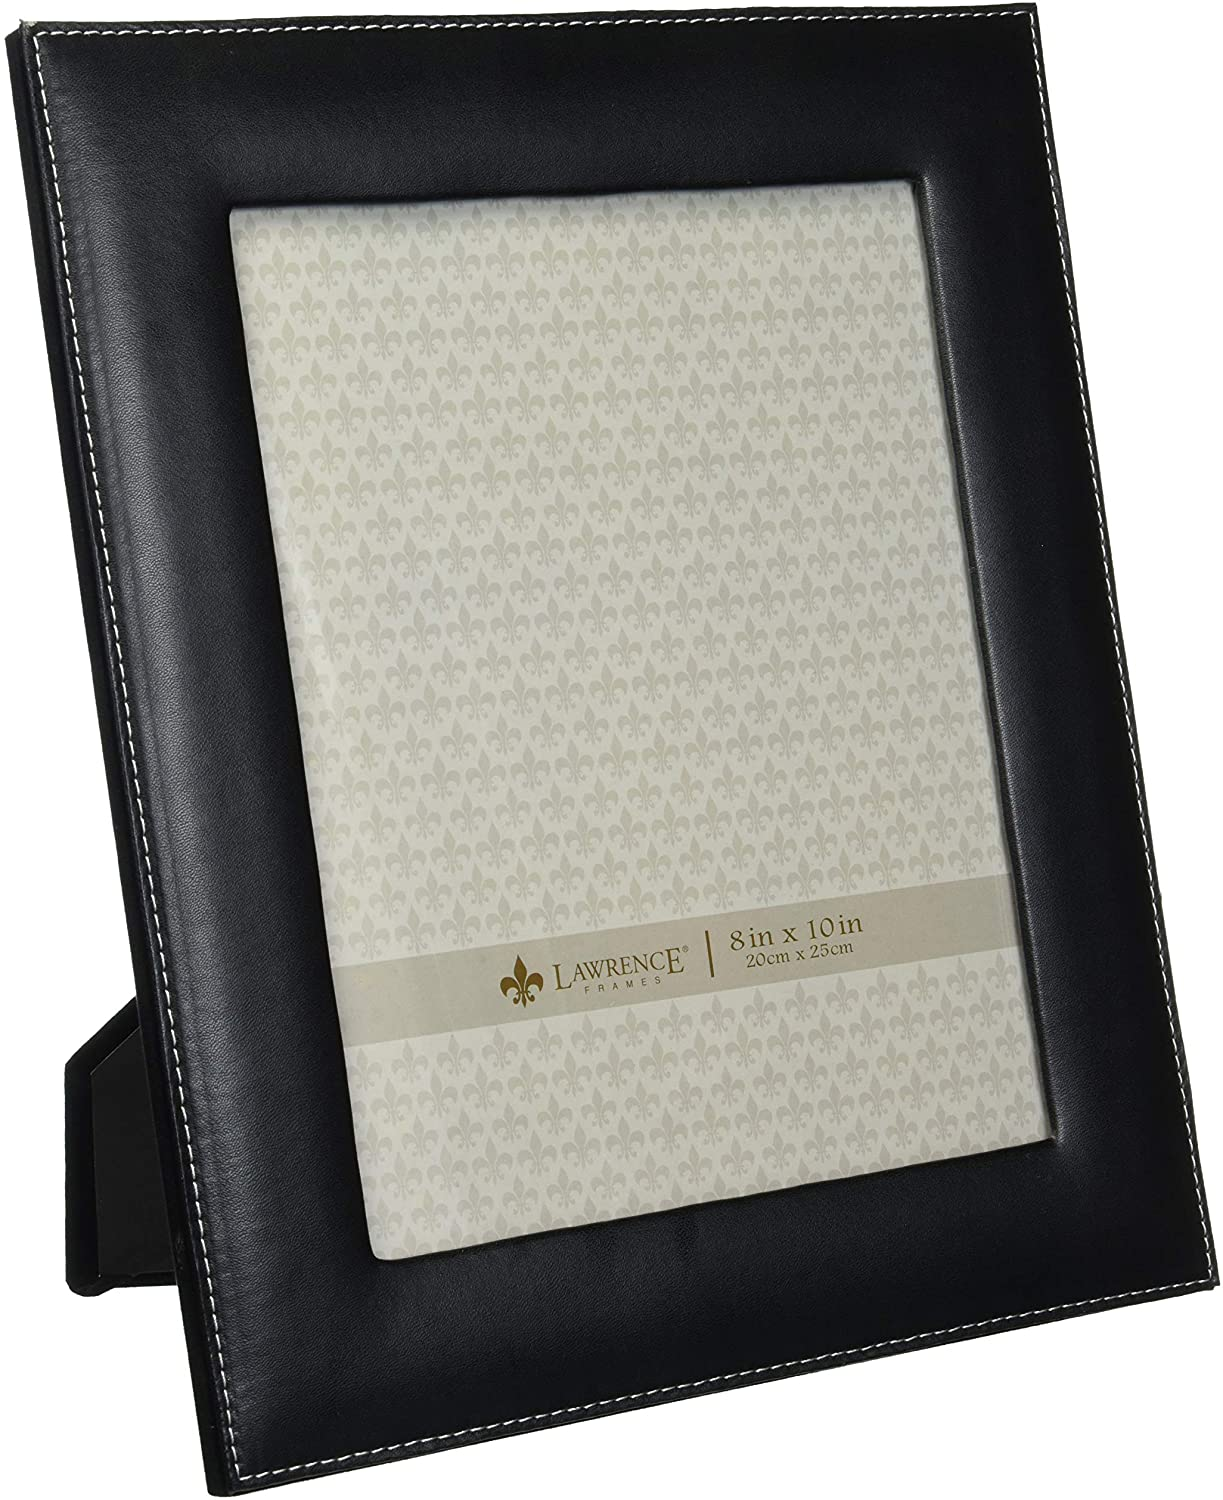 Lawrence Frames Black Leather 8 by 10 Picture Frame